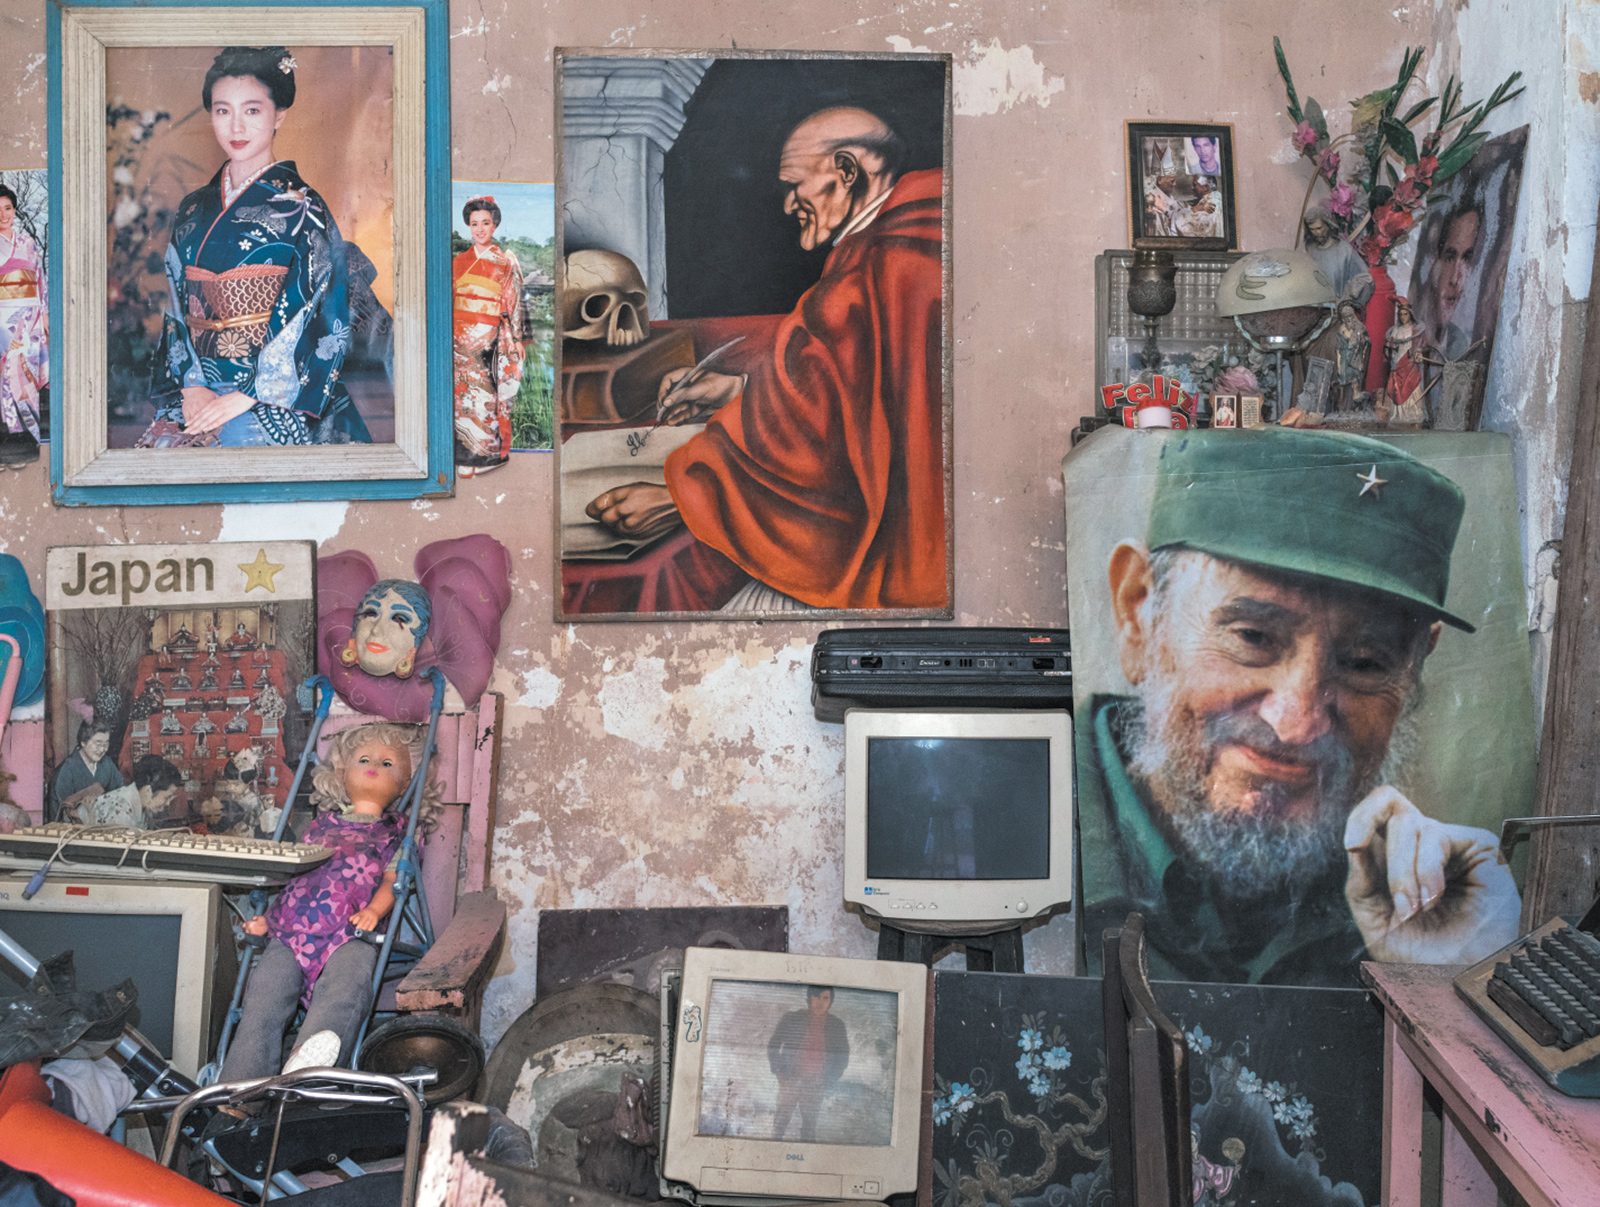 A living room in Havana with a poster of Fidel Castro at right, 2015; photograph by Carl De Keyzer from his book Cuba, La Lucha, which includes an essay by Gabriela Salgado and has just been published by Lannoo. His photographs are on view at the Roberto Polo Gallery, Brussels, through May 15.